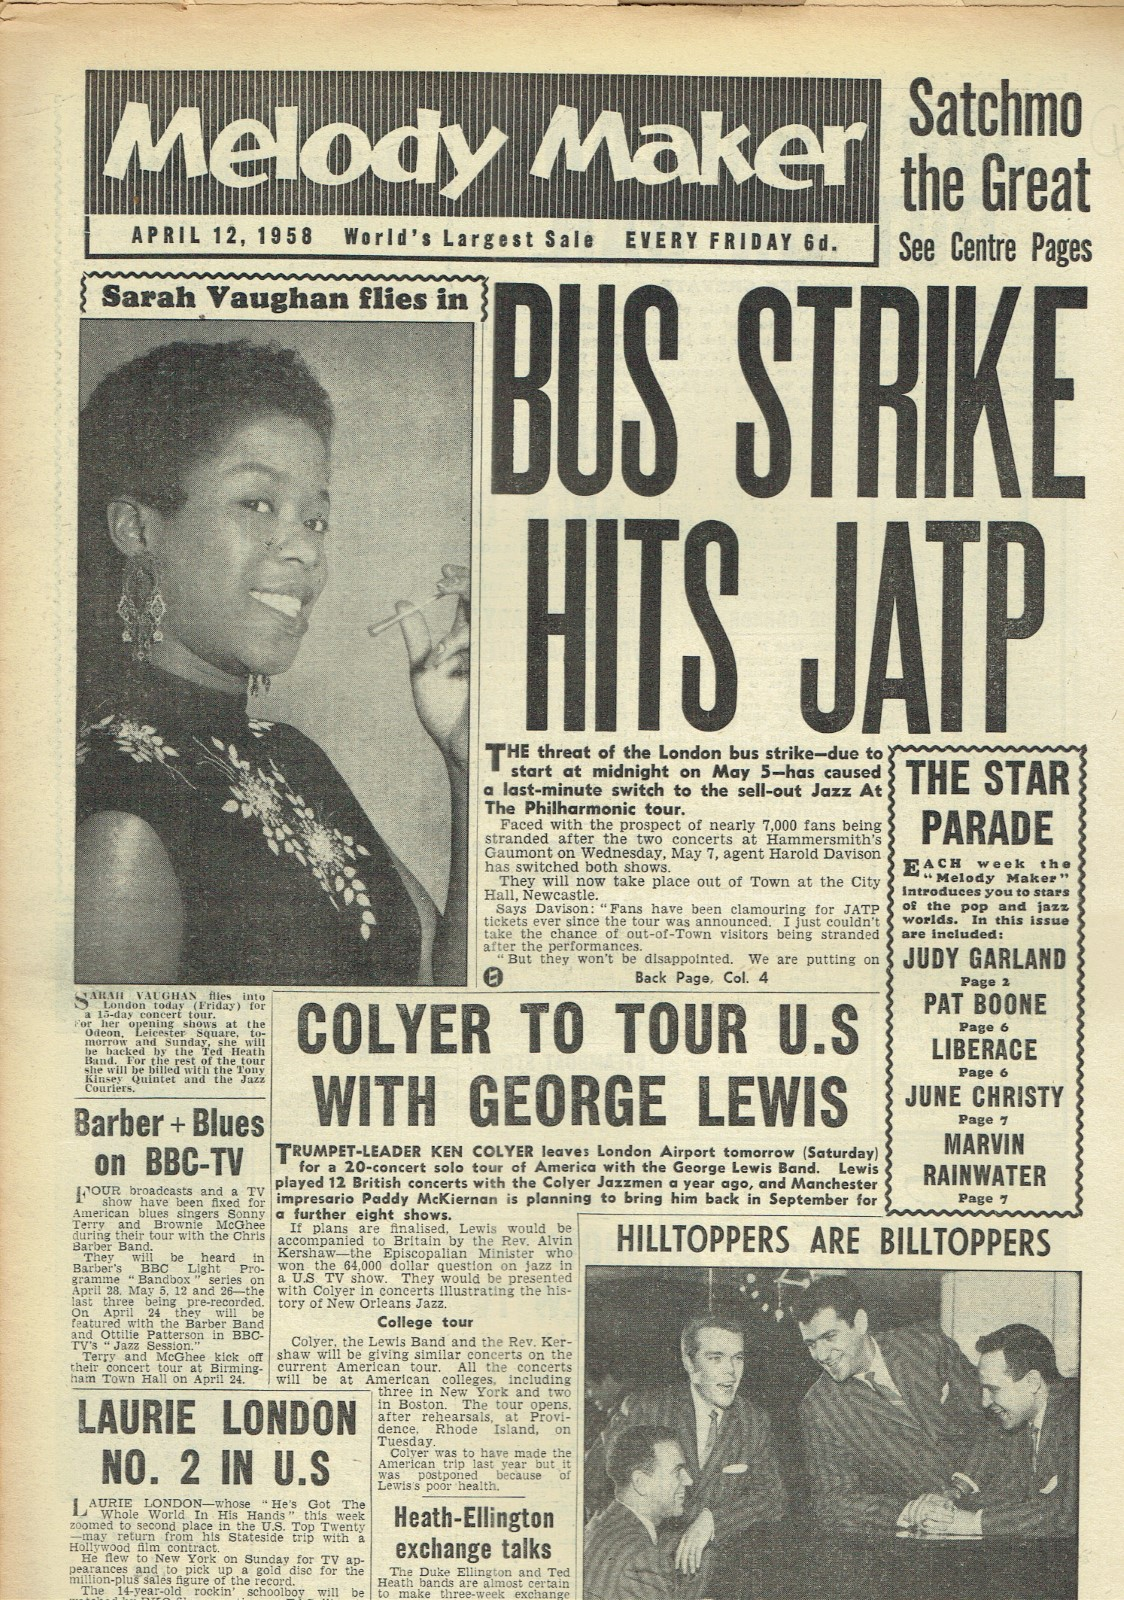 MELODY MAKER UK MUSIC PAPER APRIL 12TH 1958